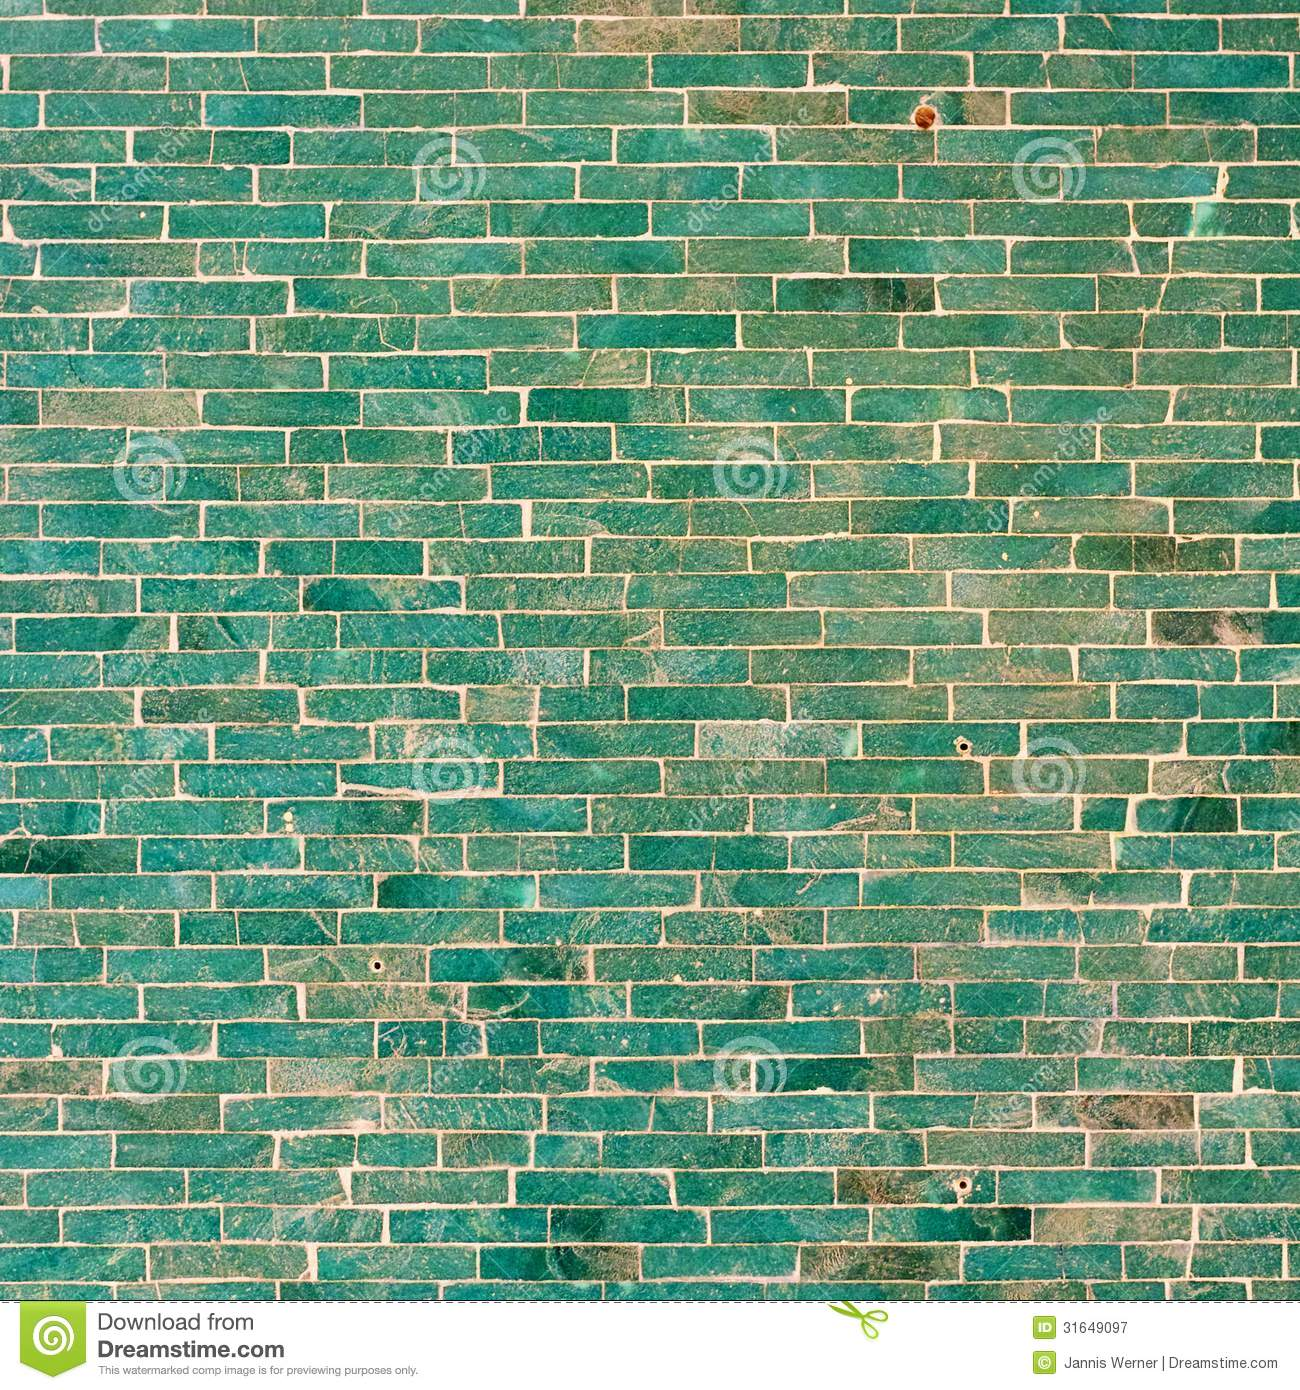 Turquoise Brick Wallpaper Turquoise Tile Wall Background Stock Image Image Of